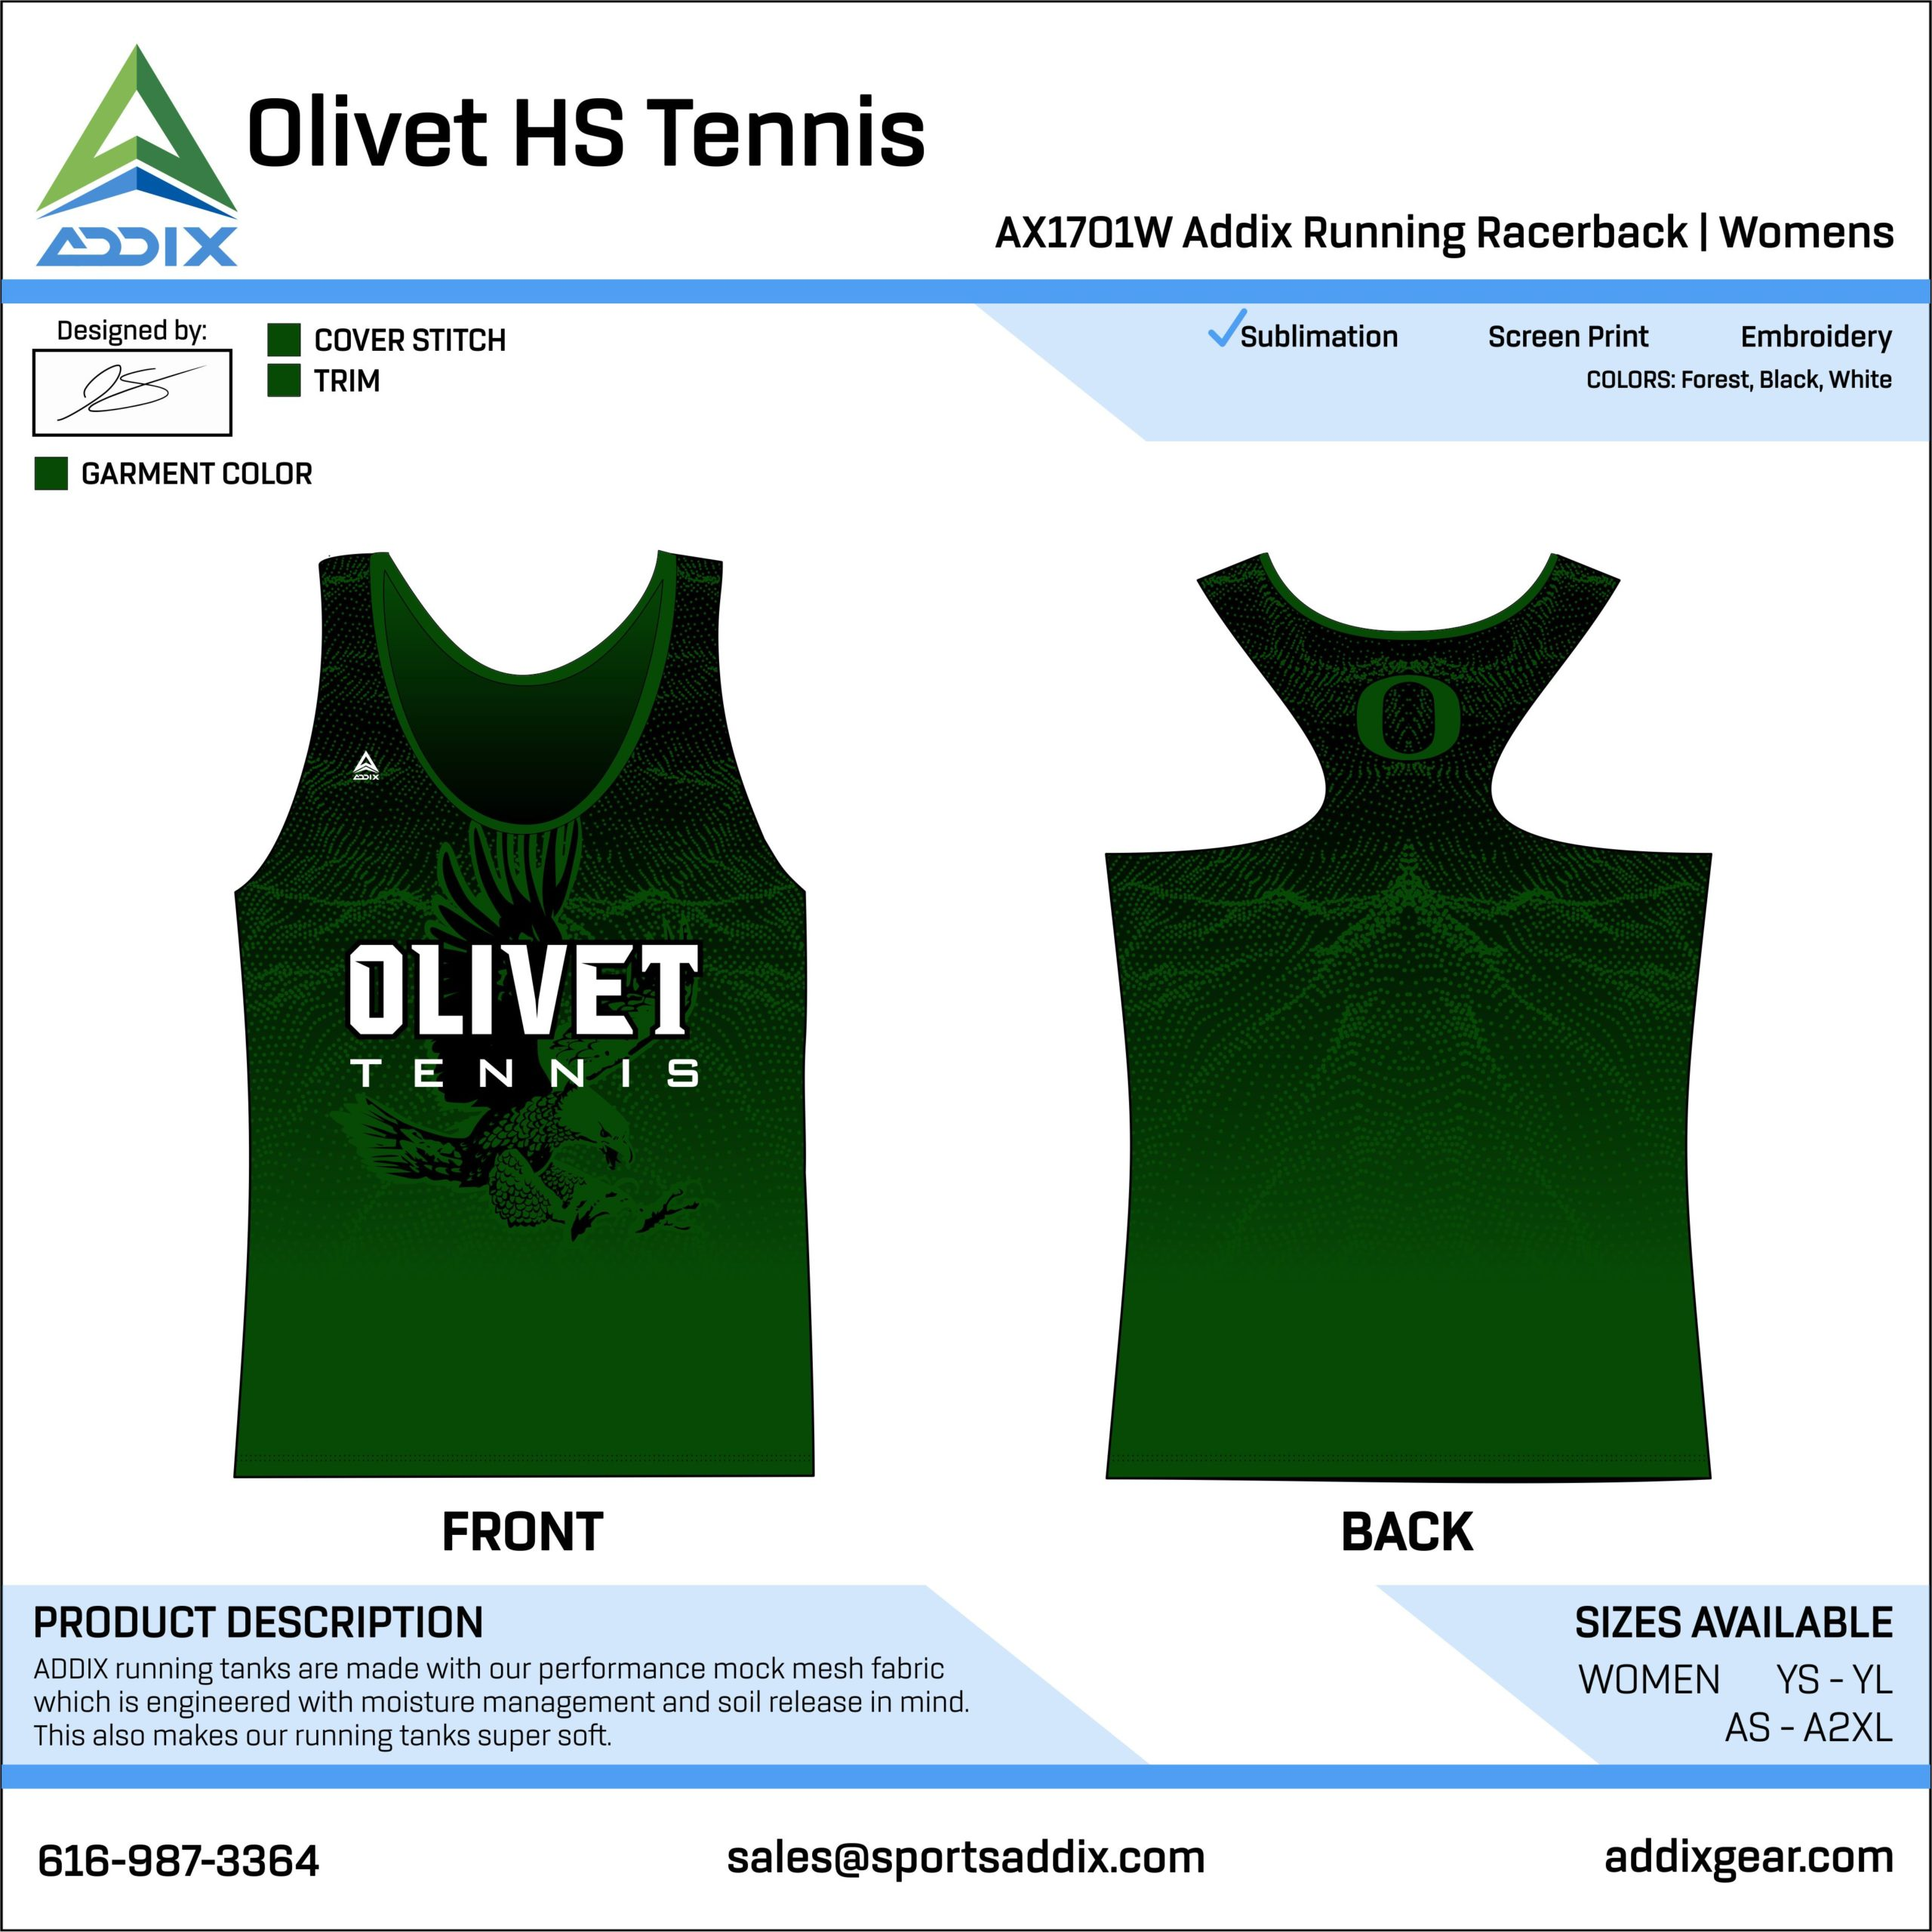 Olivet High School Tennis Racerback